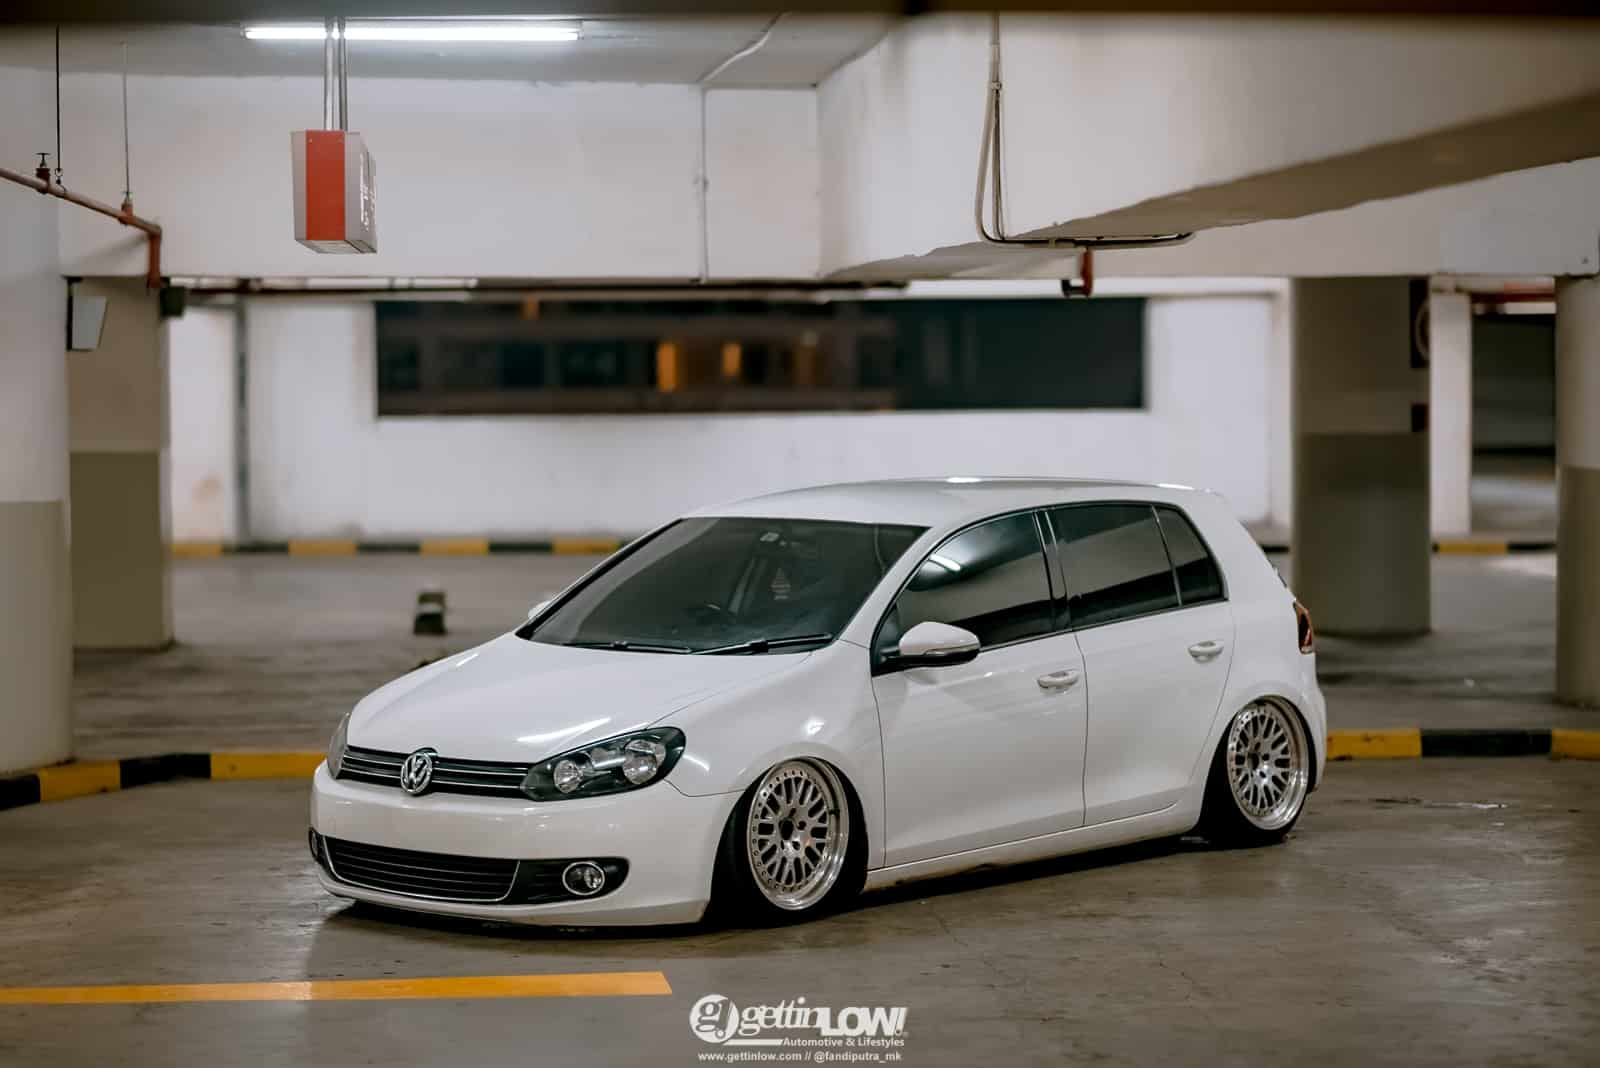 Ridho Seftiano Bagged Volkswagen Golf MK6